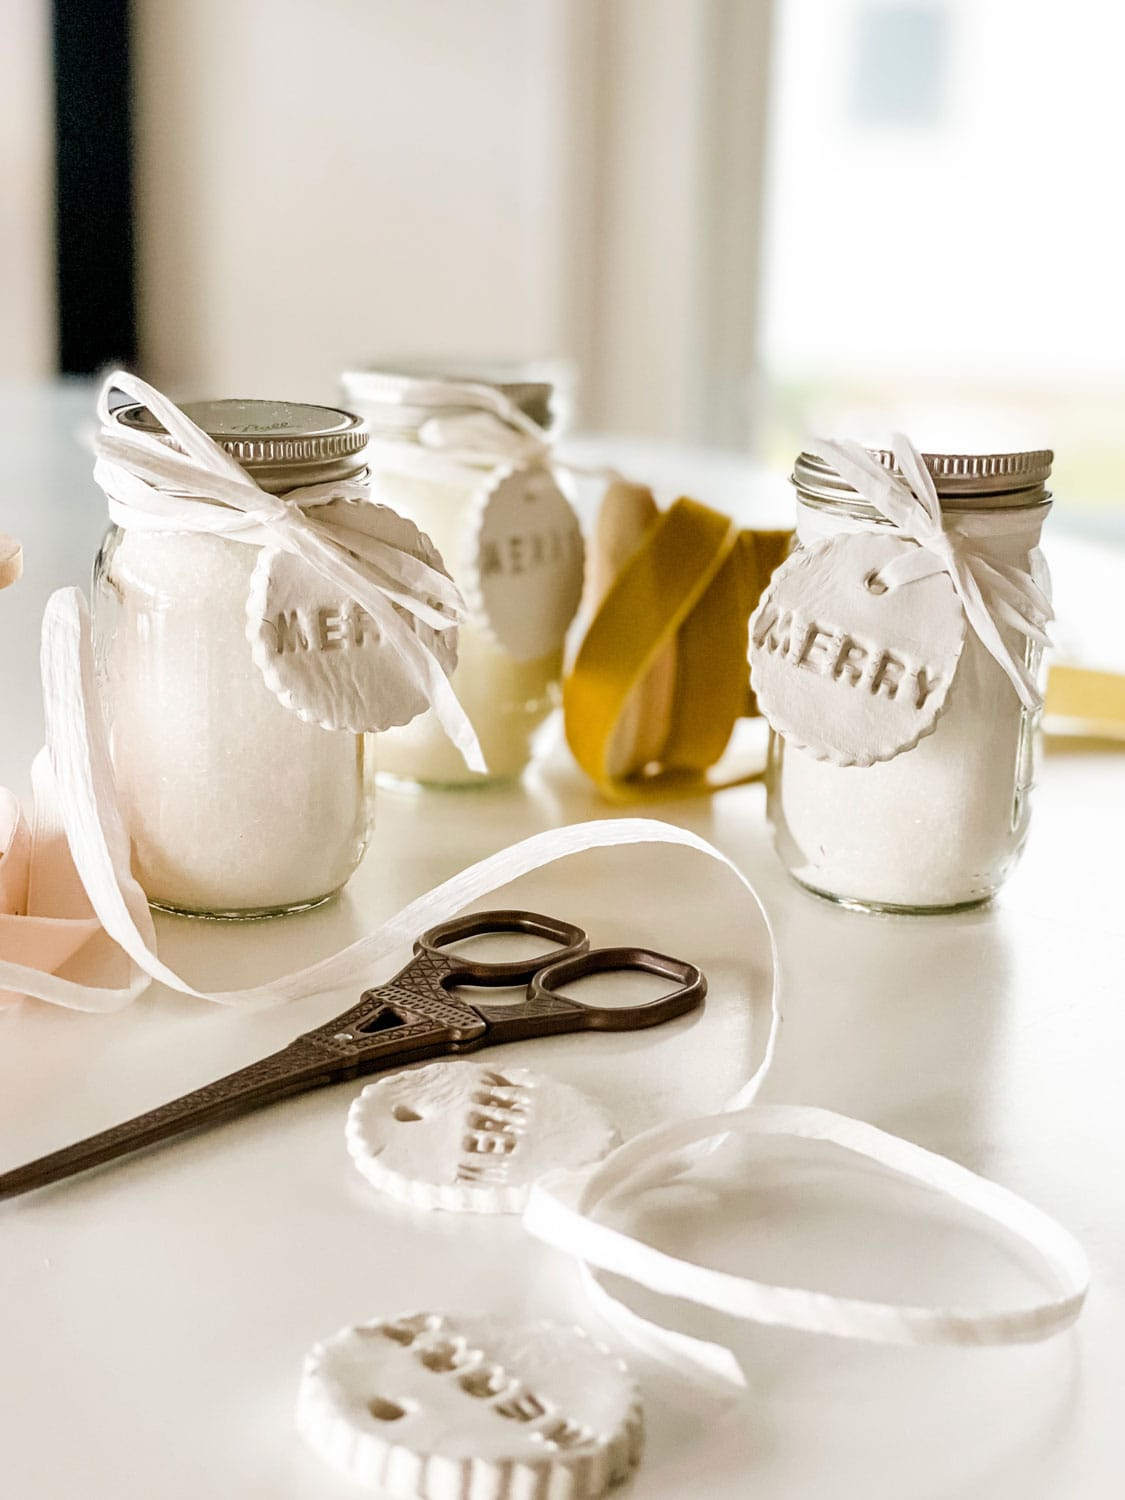 small jars with clay tags, ribbons, scissors